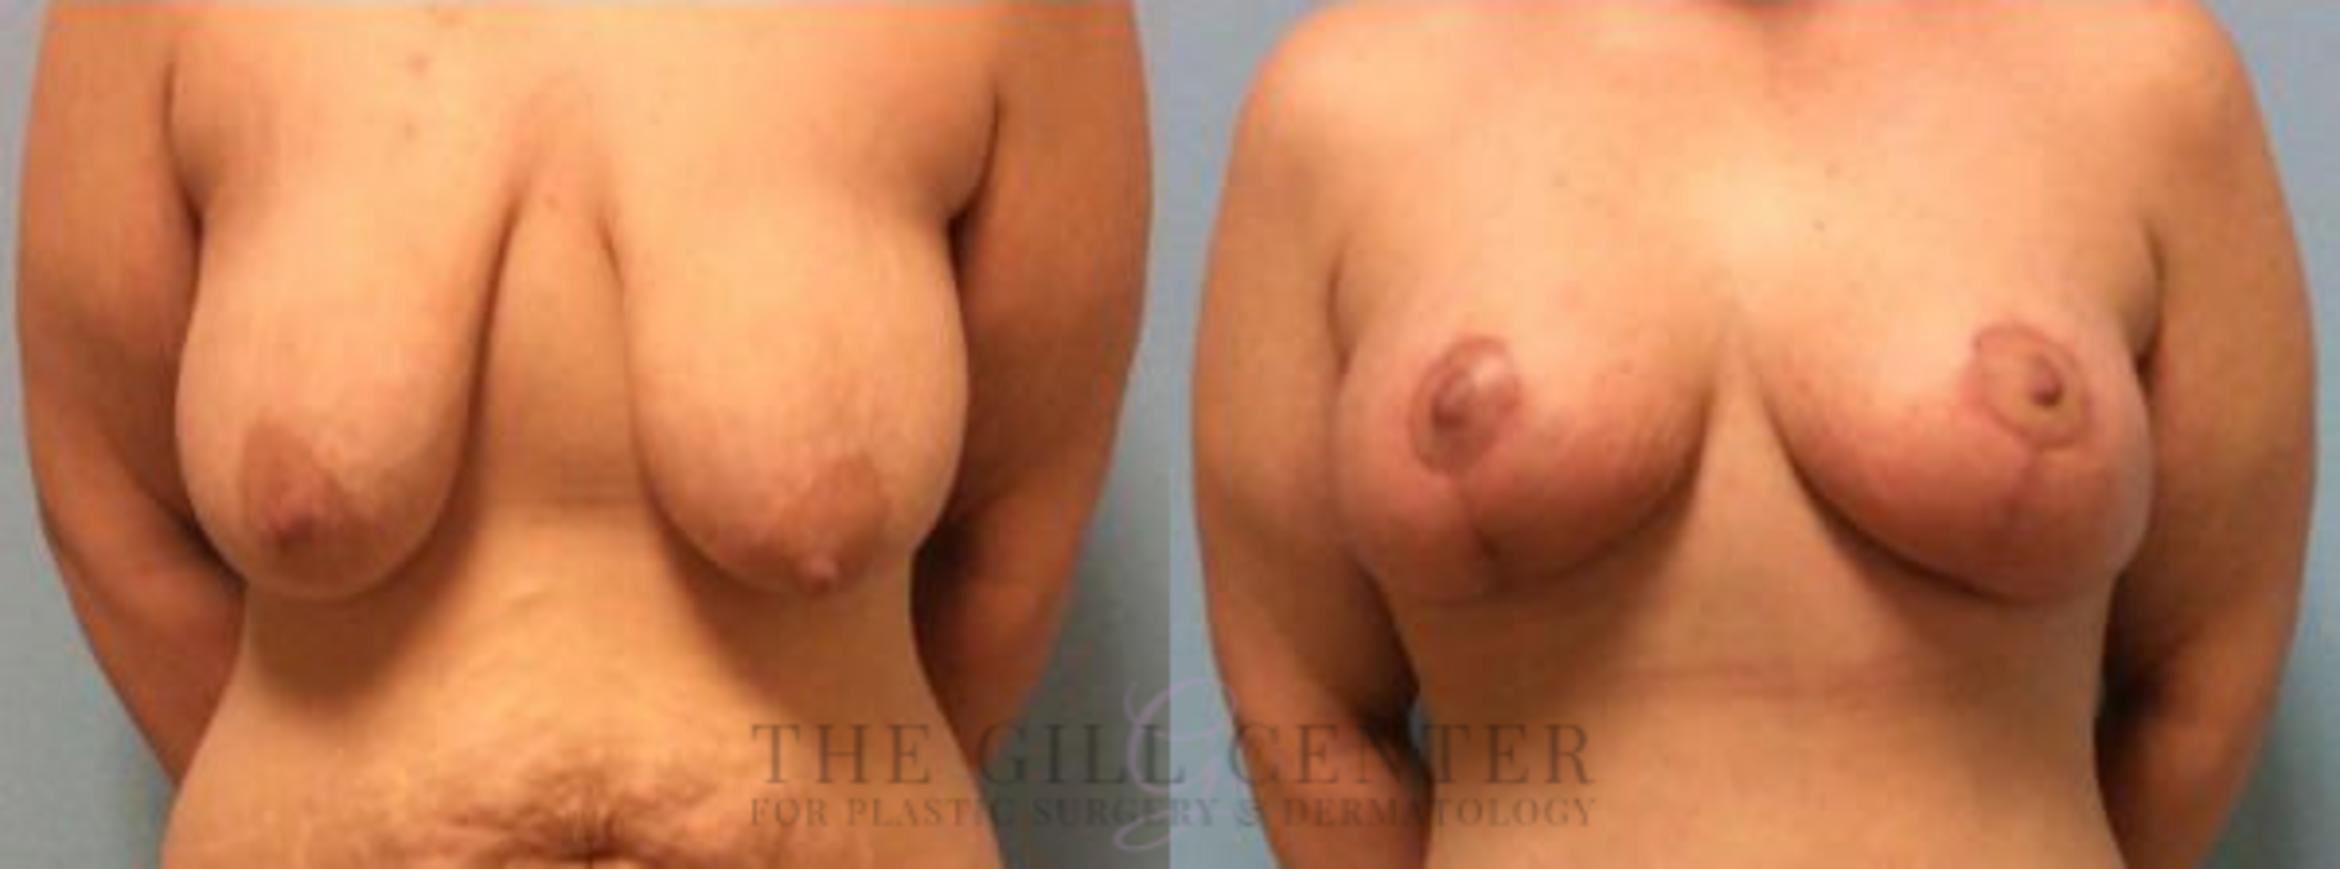 Breast Lift Case 77 Before & After Front | Shenandoah, TX | The Gill Center for Plastic Surgery and Dermatology